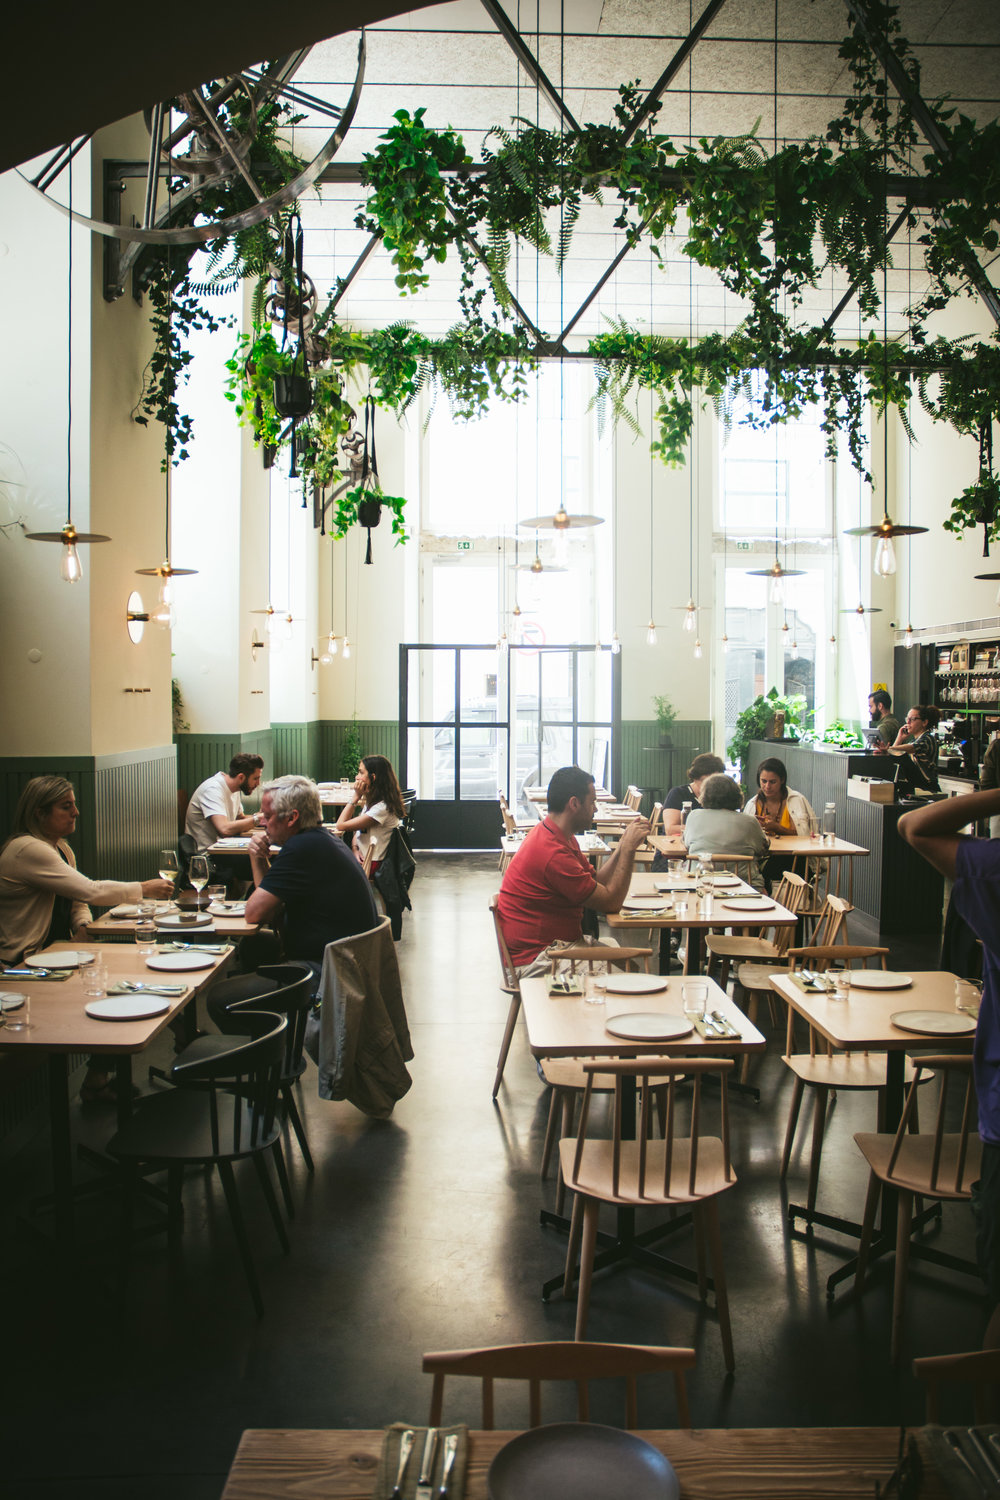 Prado restaurant - In the heart of Baixa, a farm to table concept with a Portuguese twist. A daily changing menu, all plates are based on national, seasonal, and fresh ingredients. The wine list is extensive yet focusing exclusively on organic, biodynamic, and natural reds, whites, and roses.           Tavessa das Pedras Negras, 21100-404 Lisboa+351 210 534 649info@pradorestaurante.com